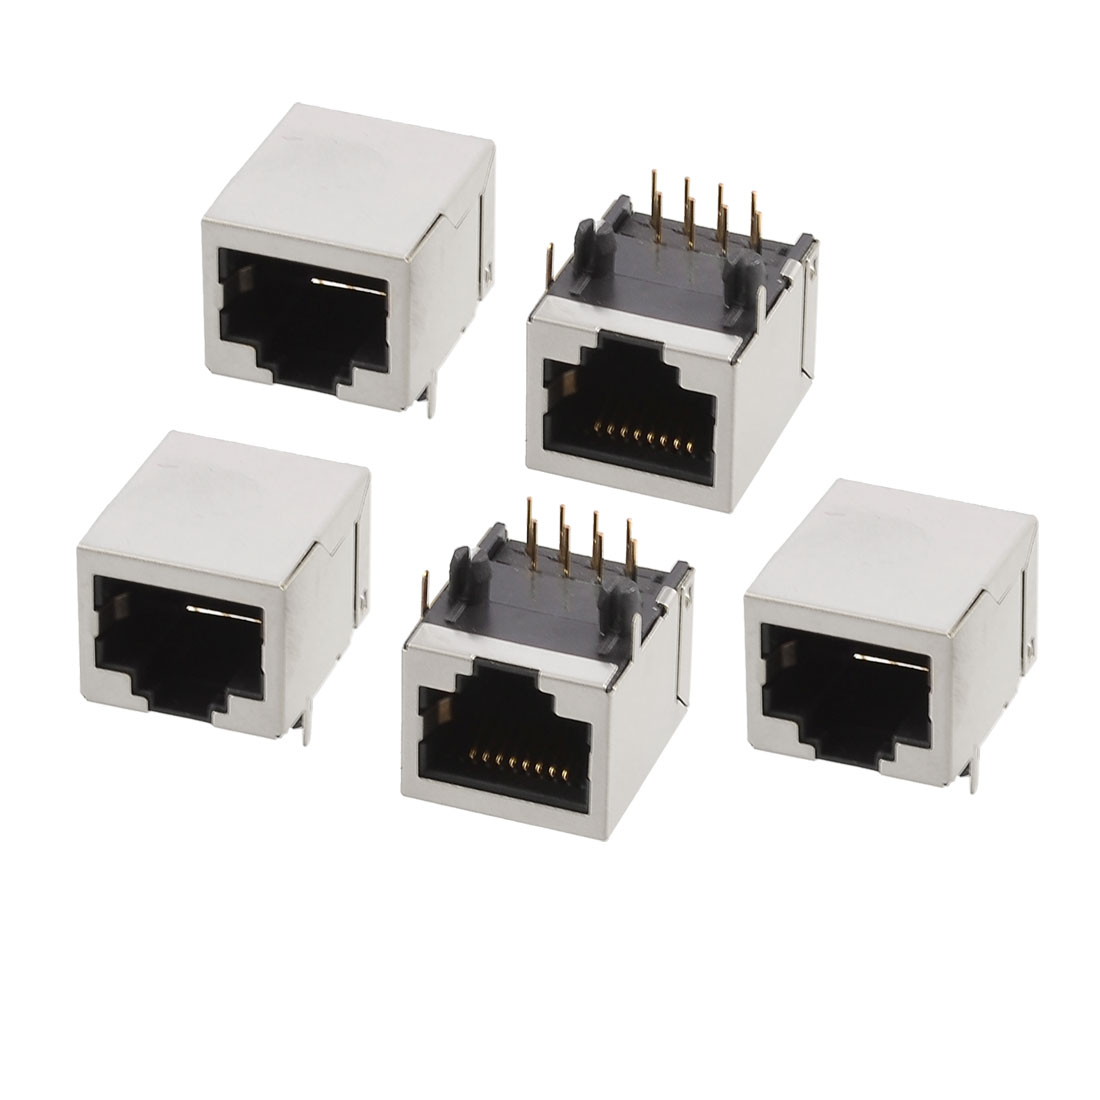 5 Pcs 8 Terminals RJ45 Socket Network Modular PCB Jacks